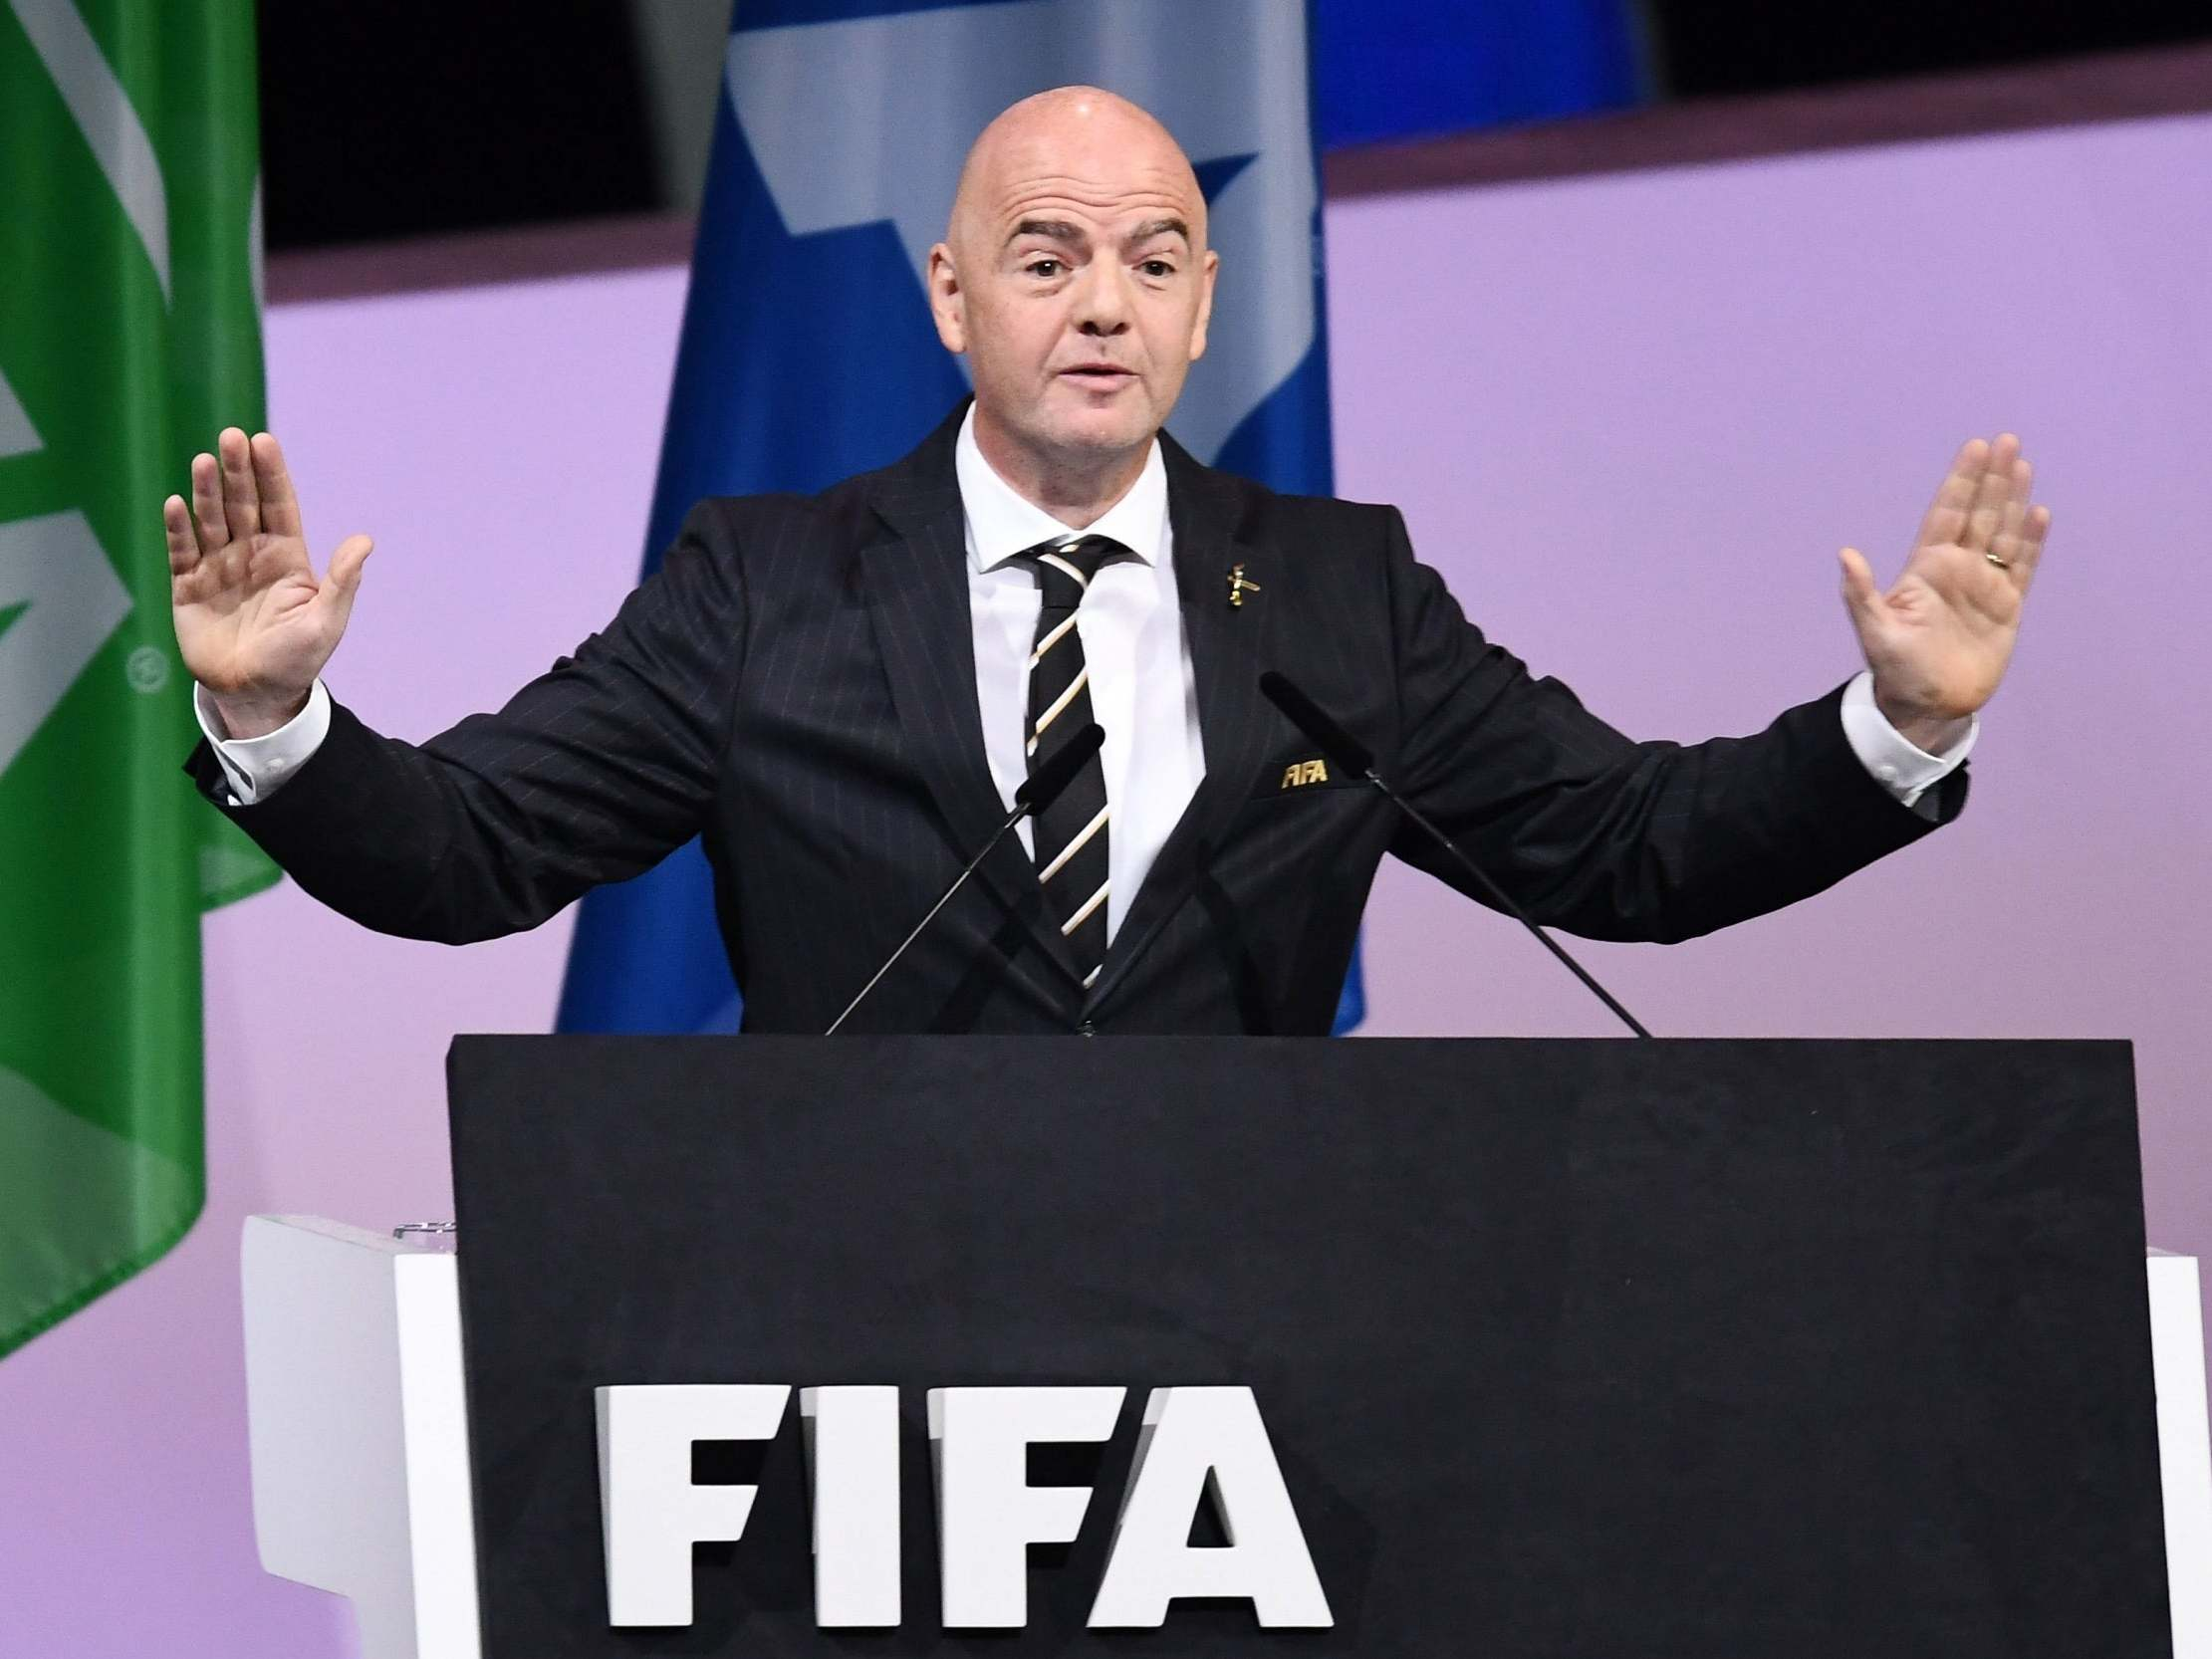 Fifa president Gianni Infantino demands 'stronger, more effective ways' to eradicate racism in football